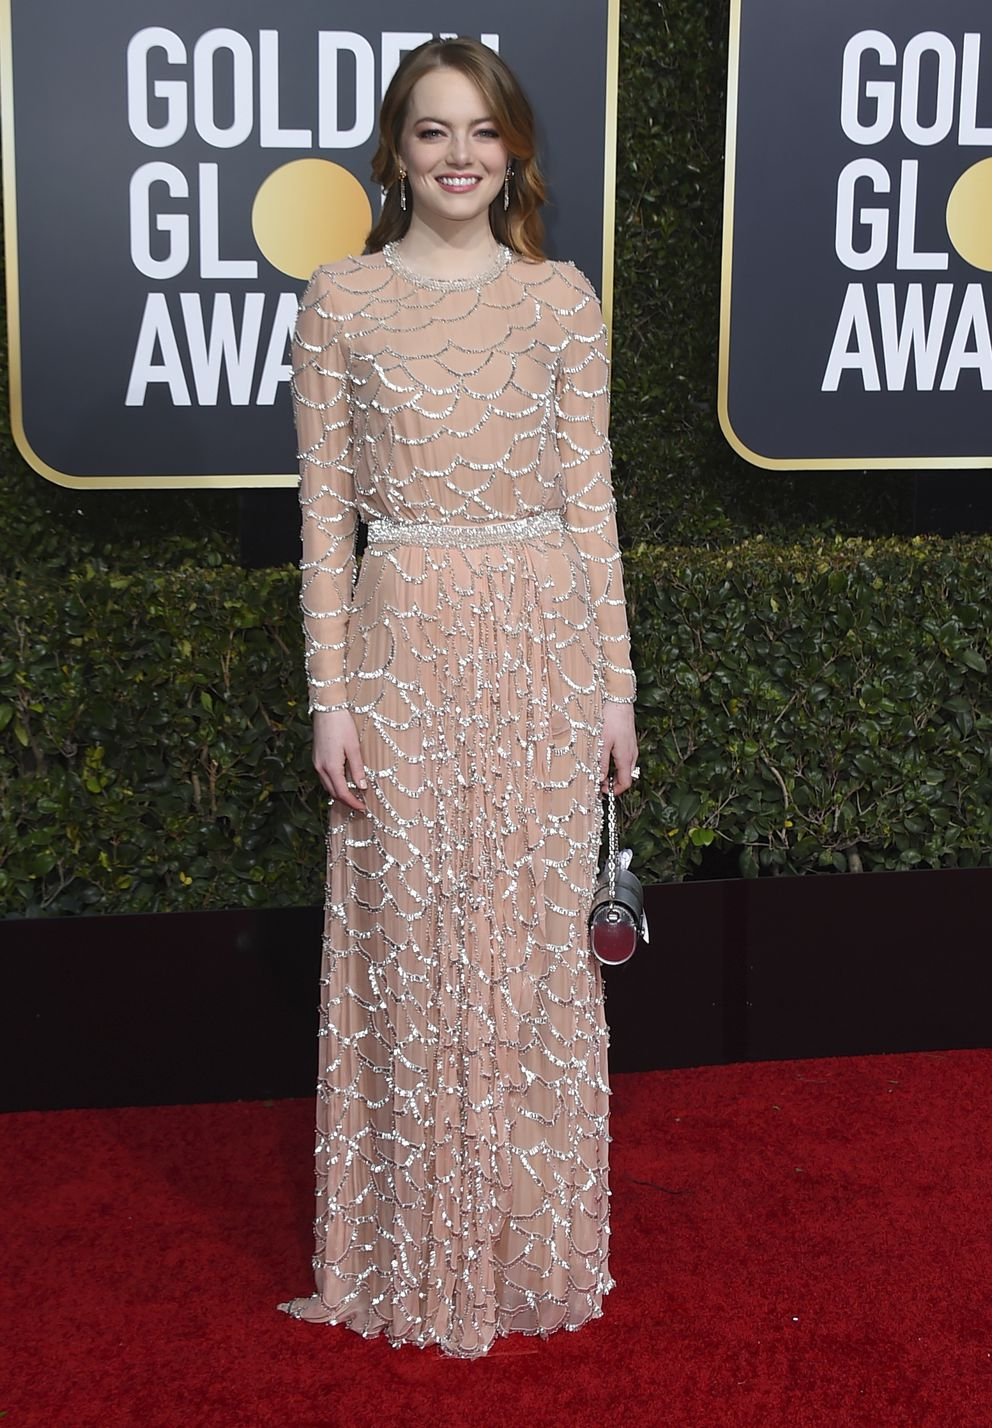 Emma Stone arrives at the 76th annual Golden Globe Awards at the Beverly Hilton Hotel on Sunday, Jan. 6, 2019, in Beverly Hills, Calif. (Photo by Jordan Strauss/Invision/AP)